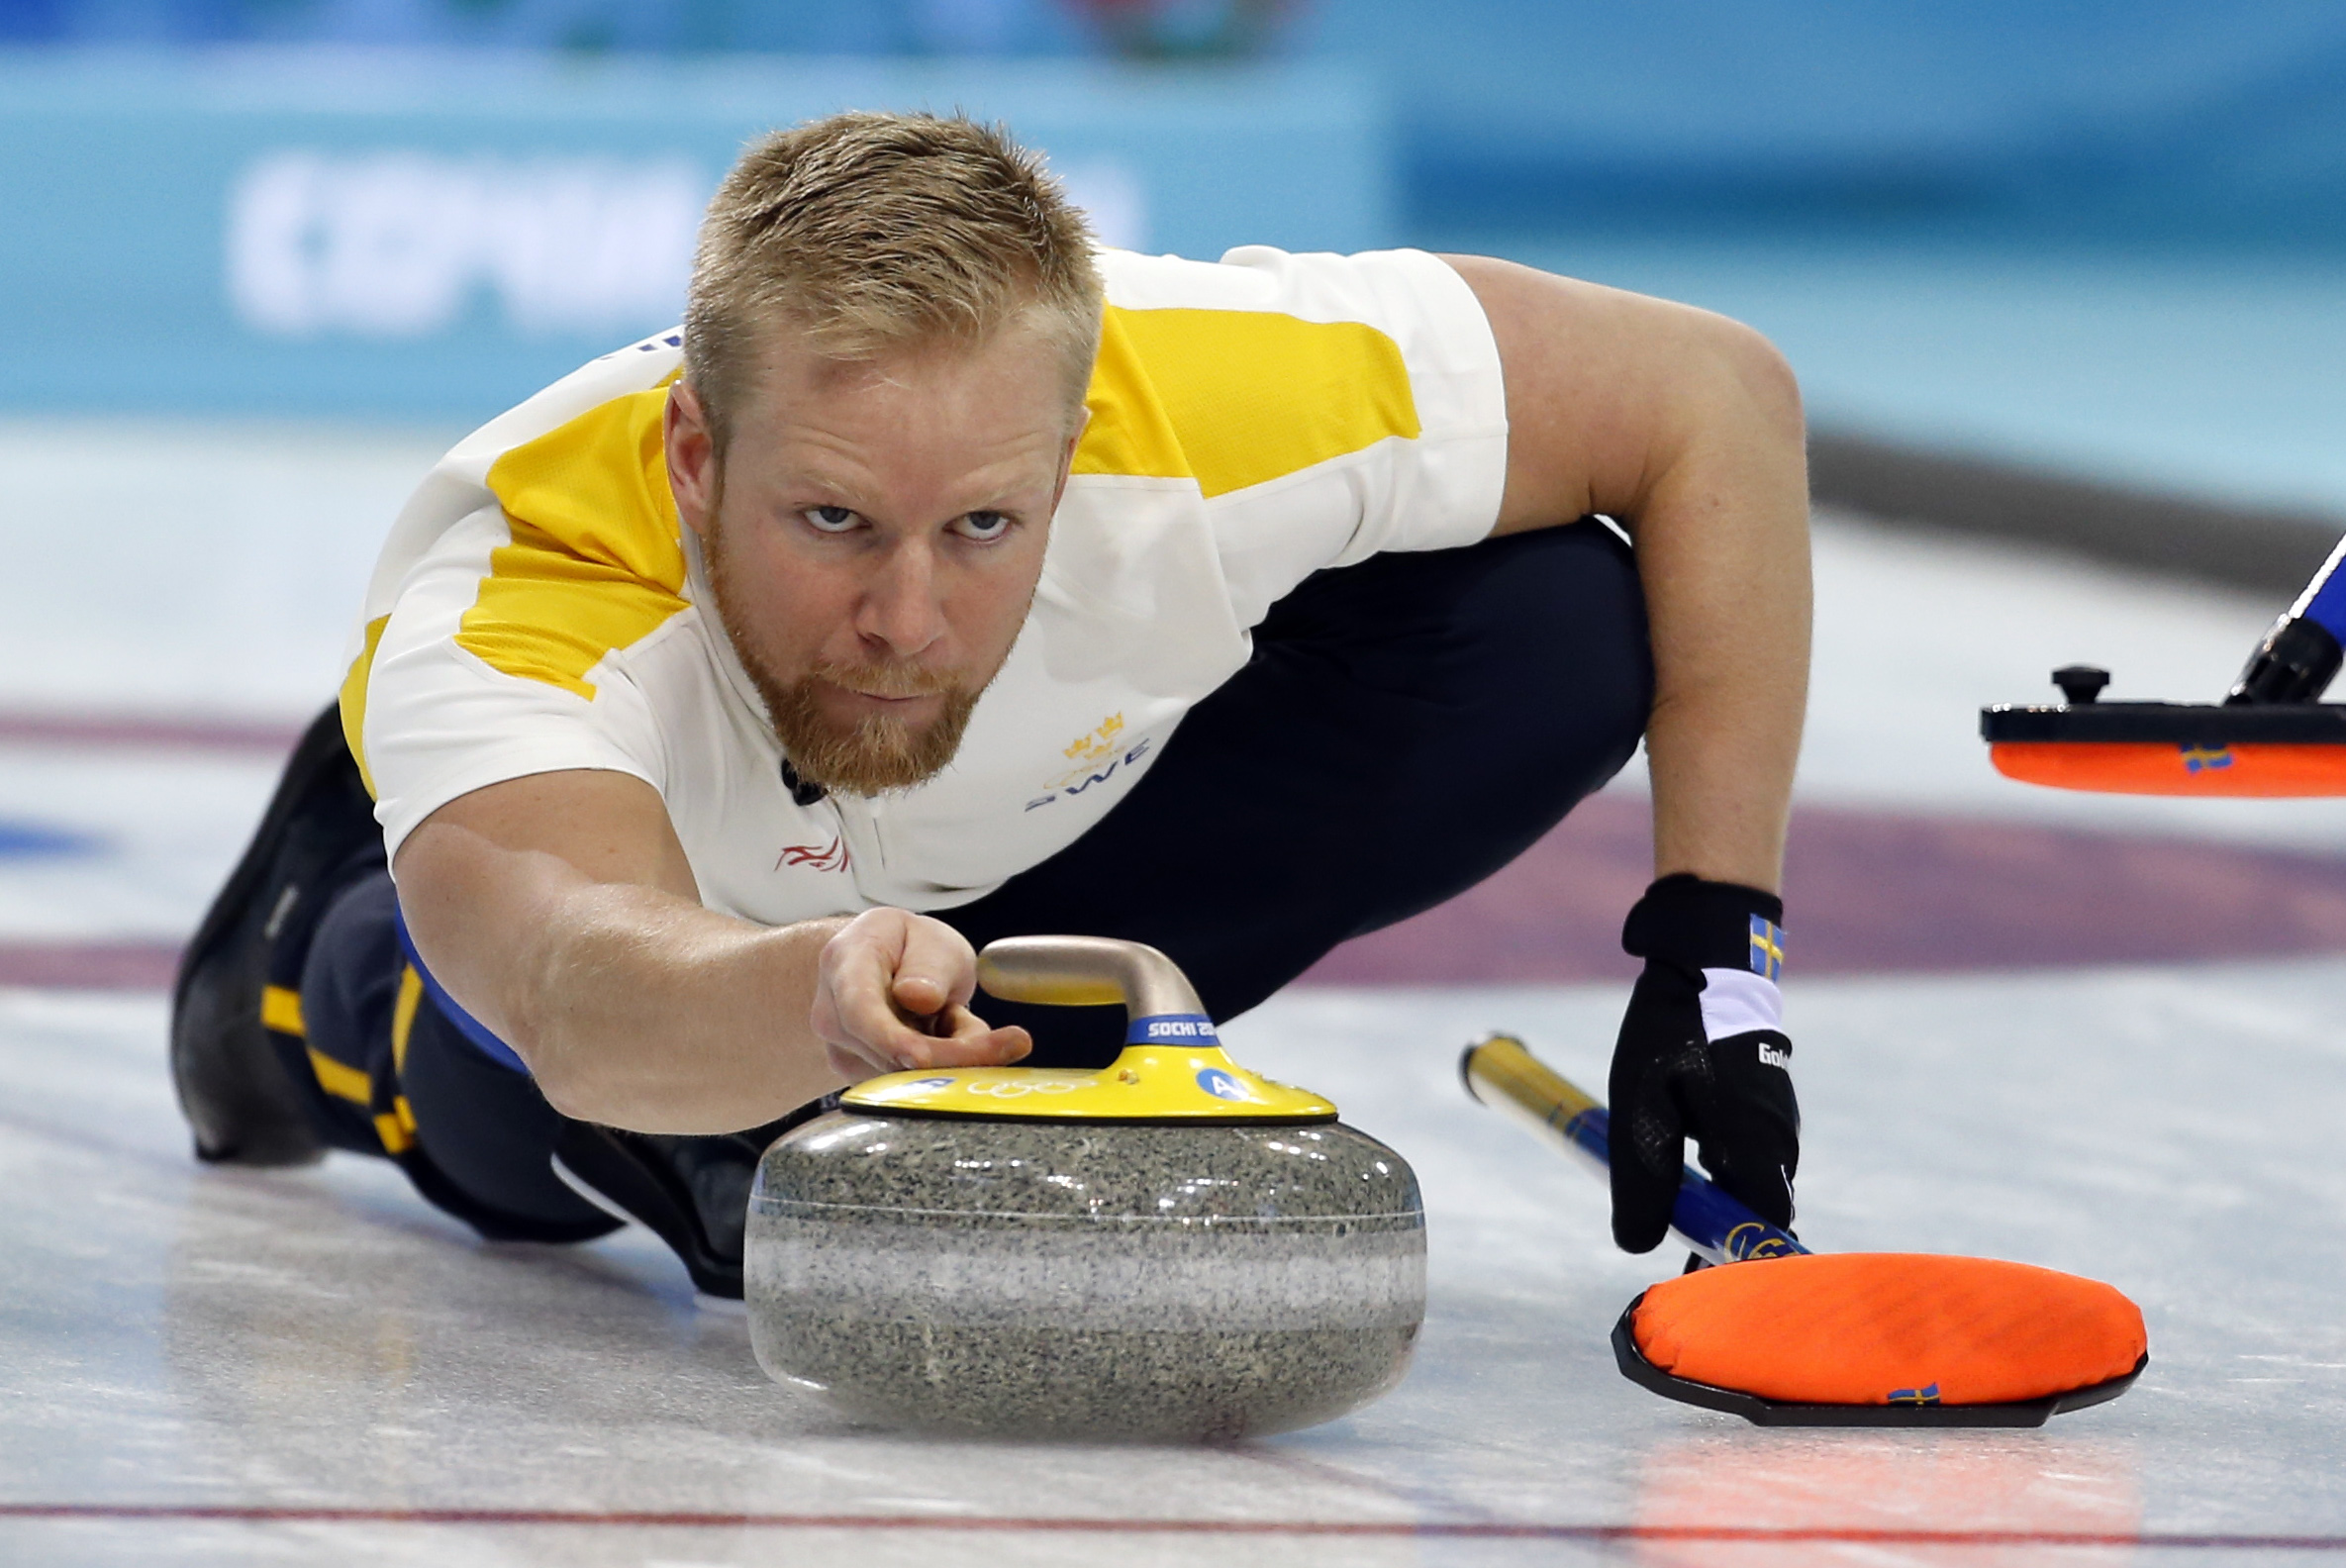 Sweden's skip Niklas Edin delivers the rock during men's curling competition against Canada at the 2014 Winter Olympics, Tuesday, Feb. 11, 2014, in Sochi, Russia. (AP Photo/Robert F. Bukaty)